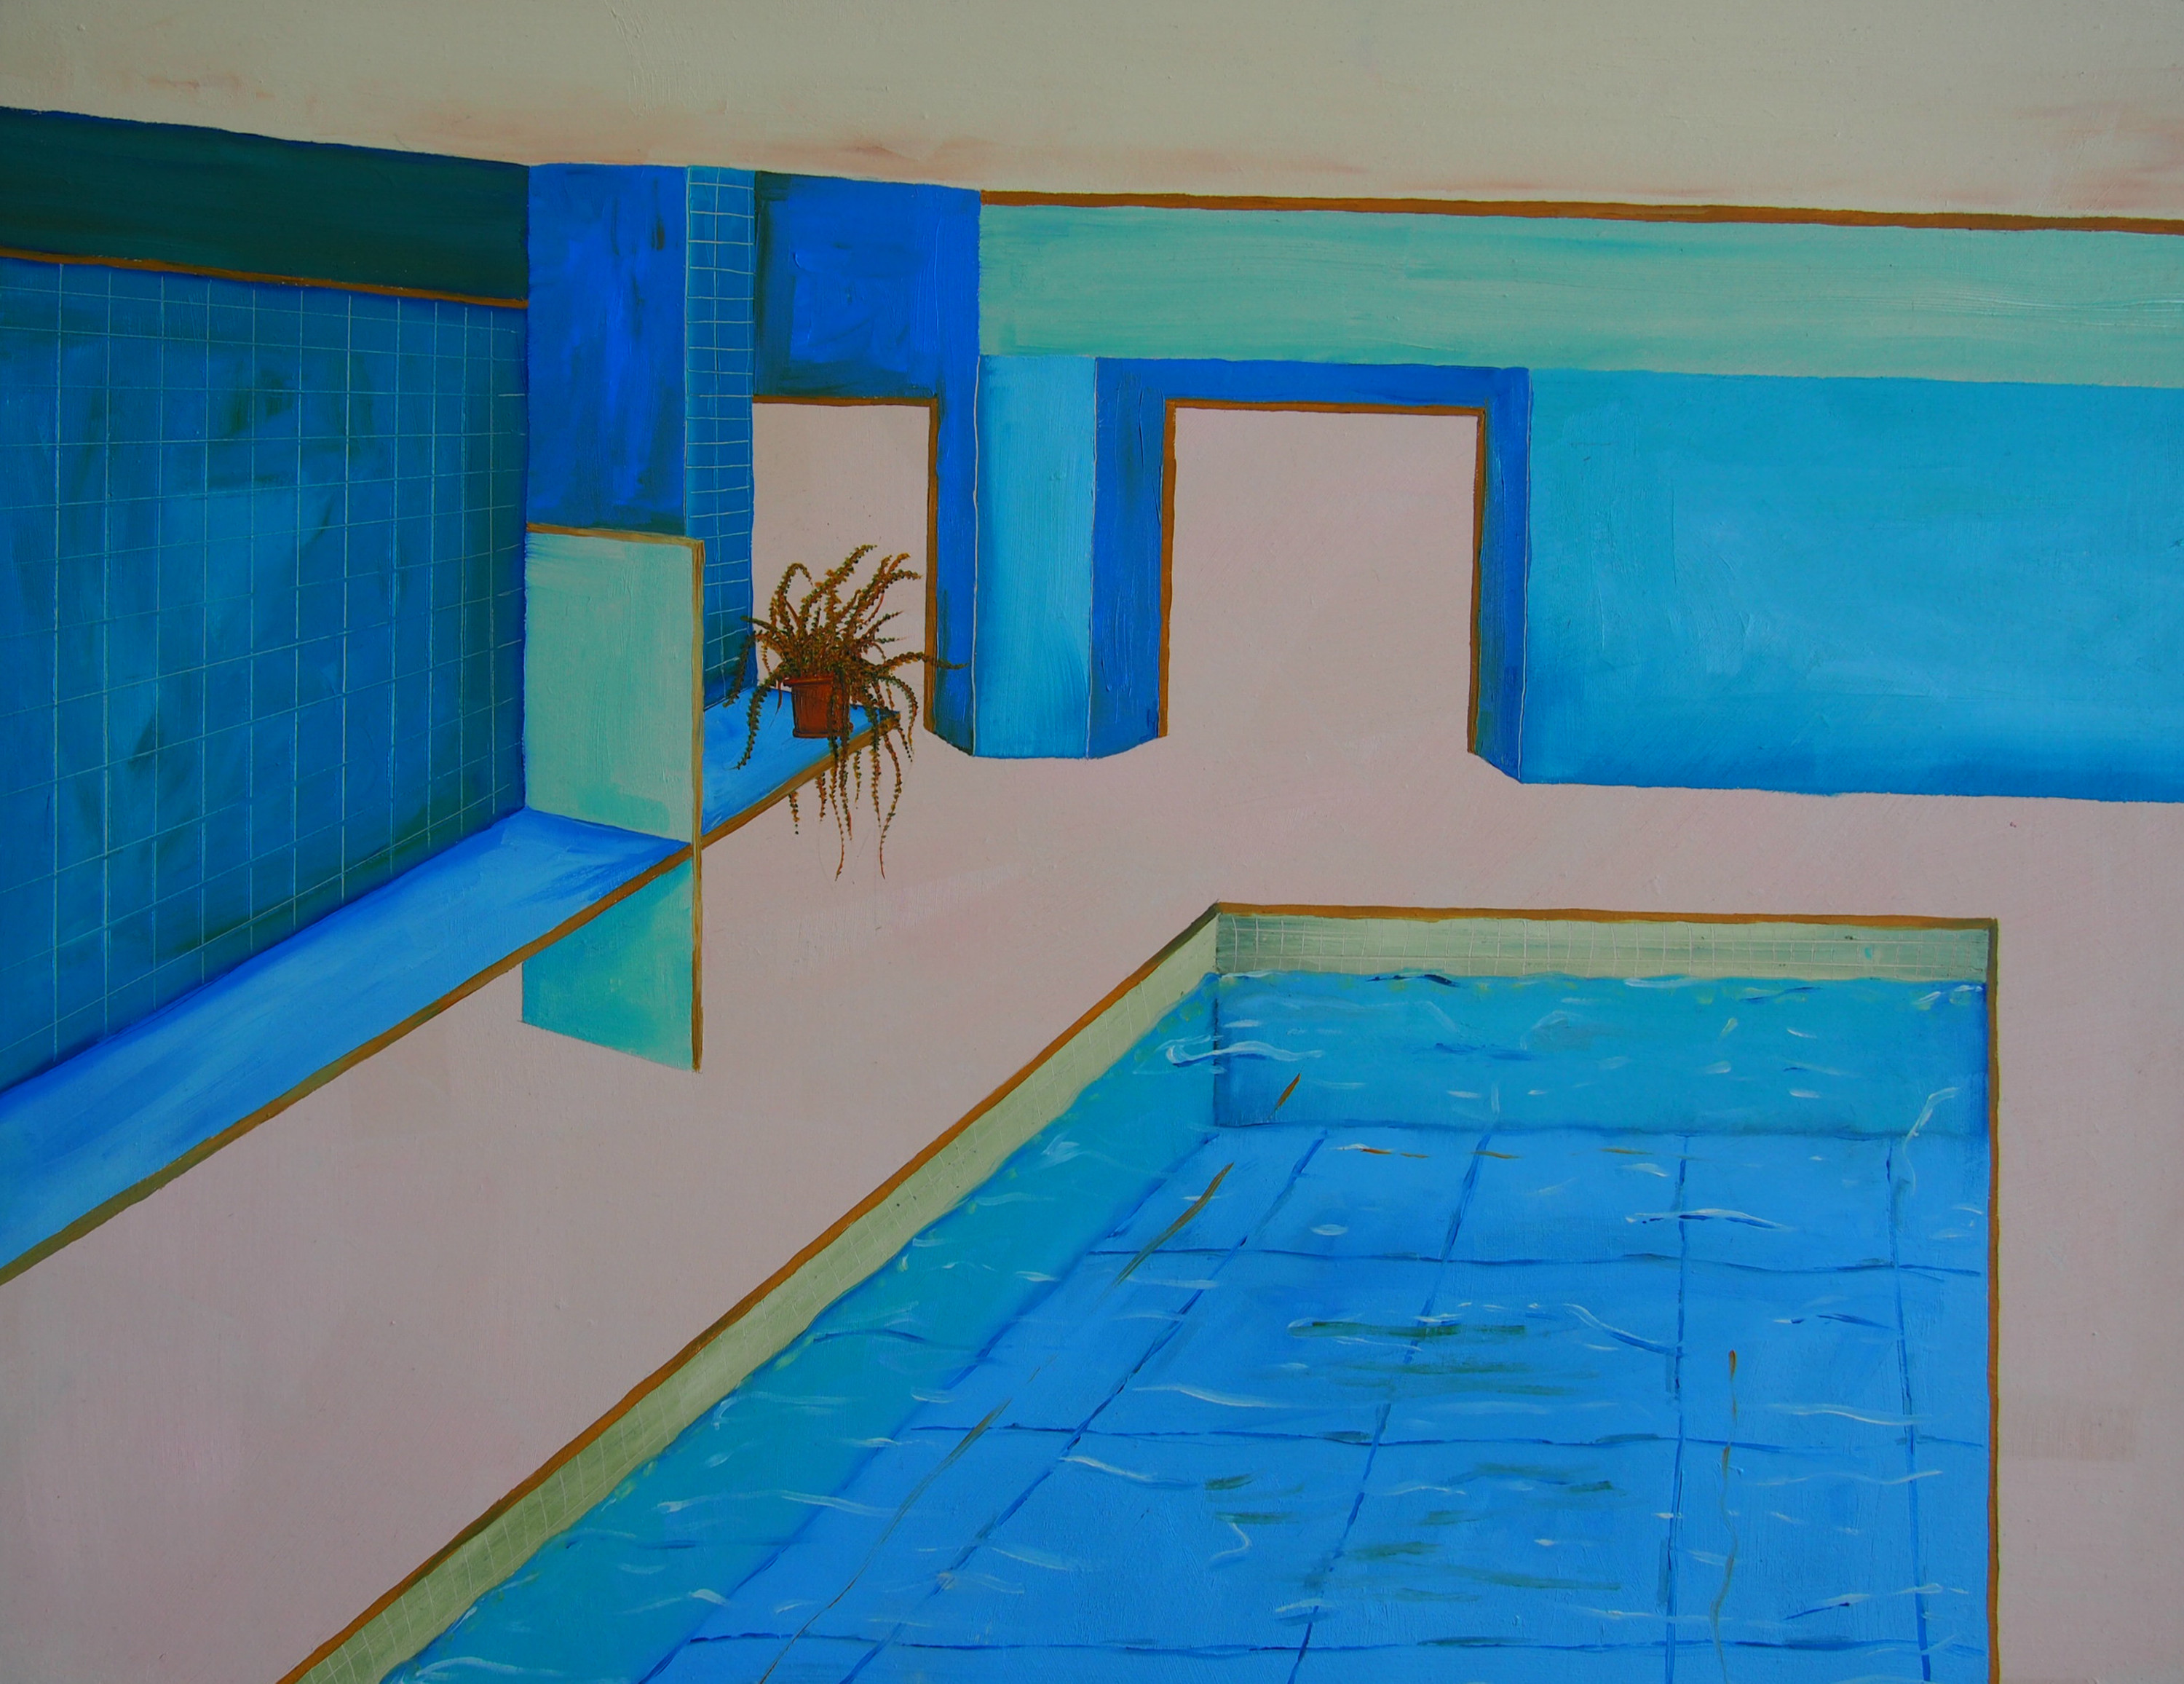 Indoor Pool, 2017.